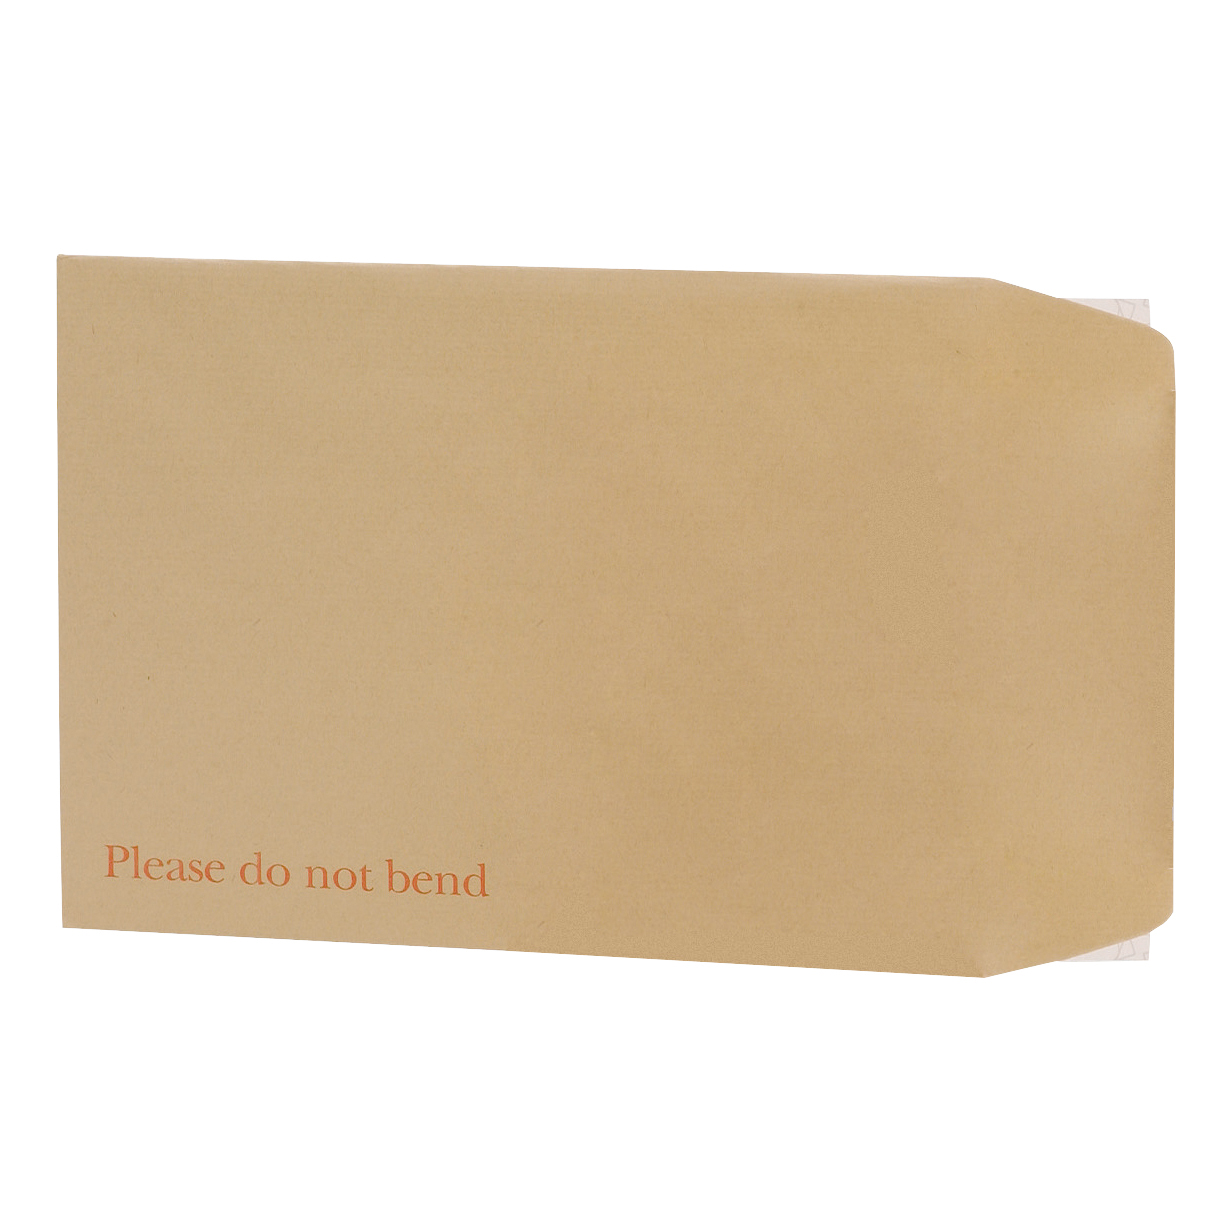 5 Star Office Envelopes Recycled Board Backed Hot Melt Peel & Seal 350x248mm 120gsm Manilla Pack 125